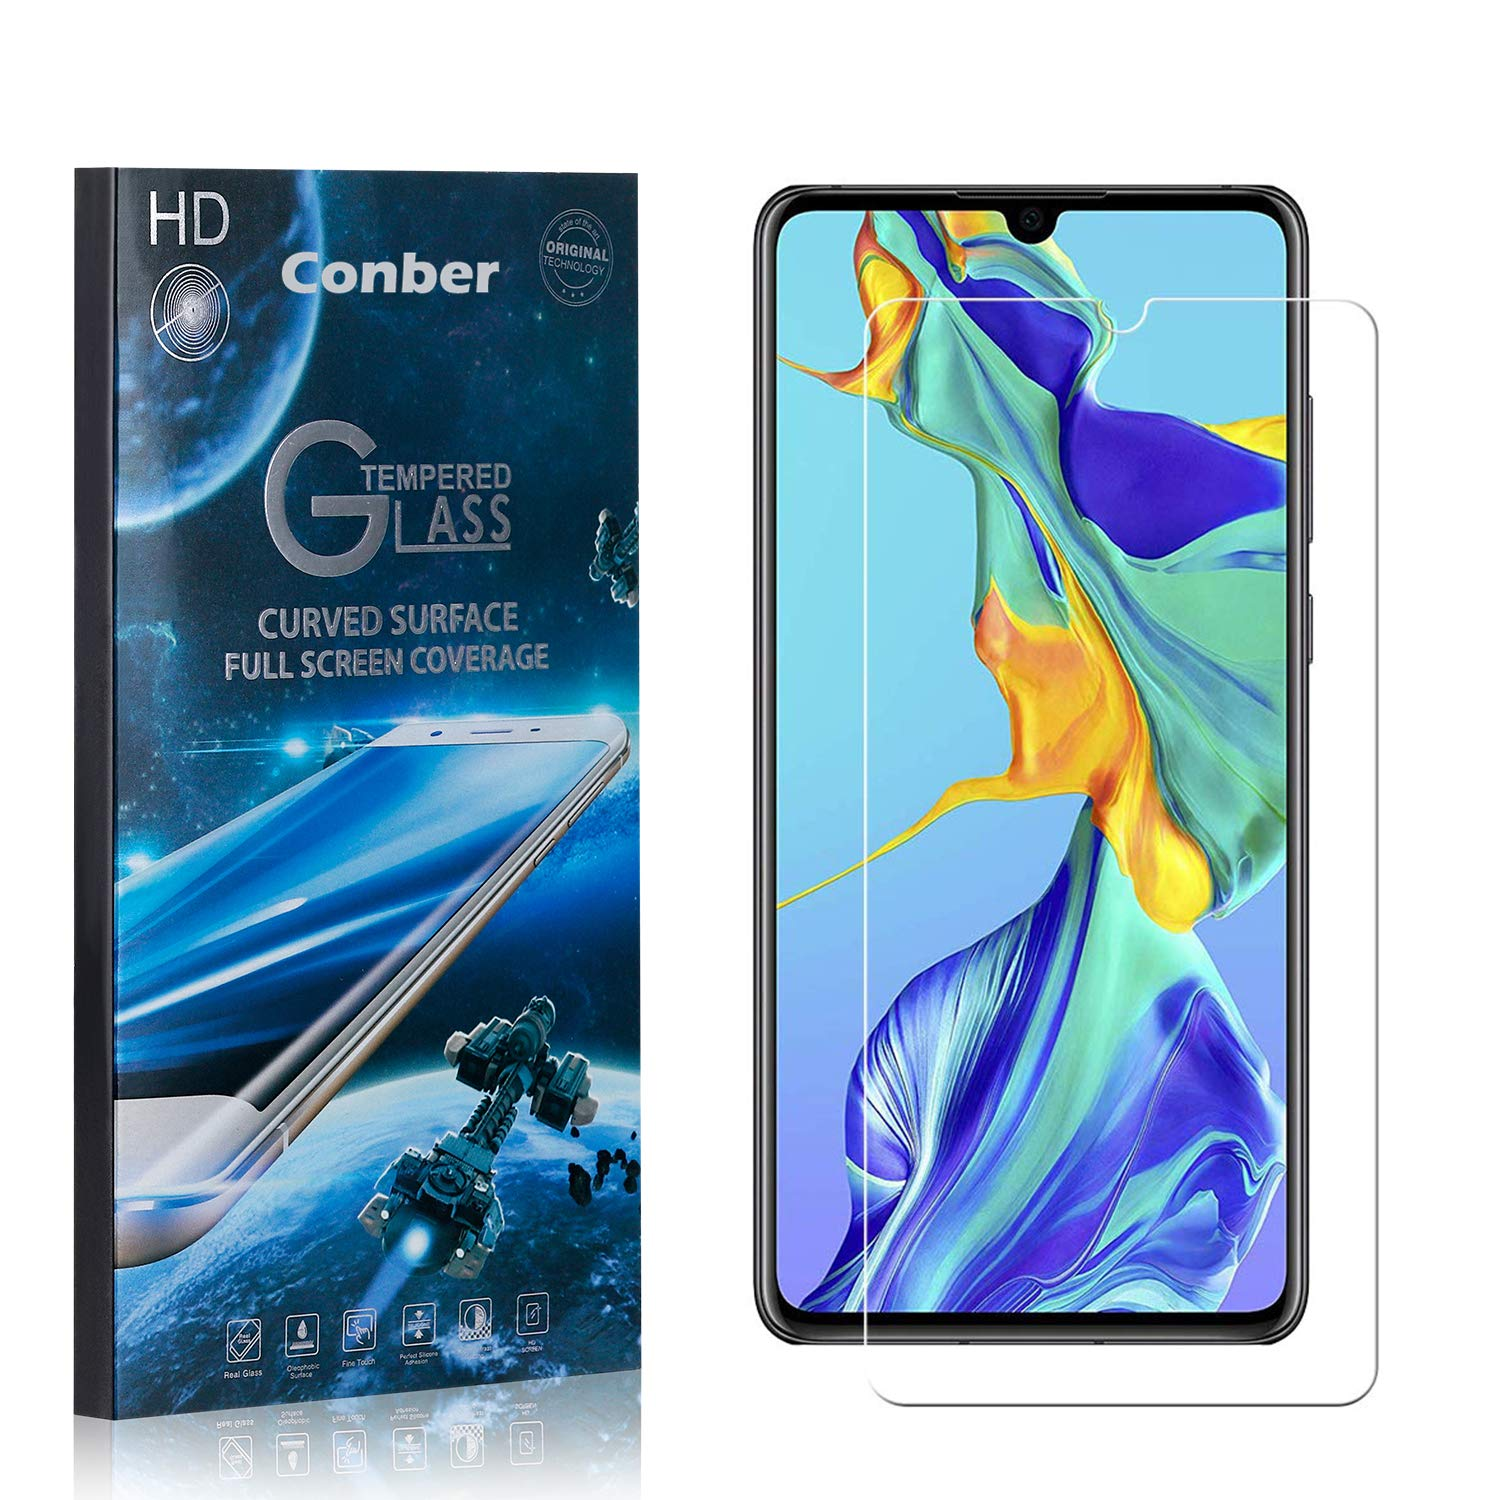 Conber 1 Pack Screen Protector Limited price Scratch-Resist for Huawei New York Mall P30